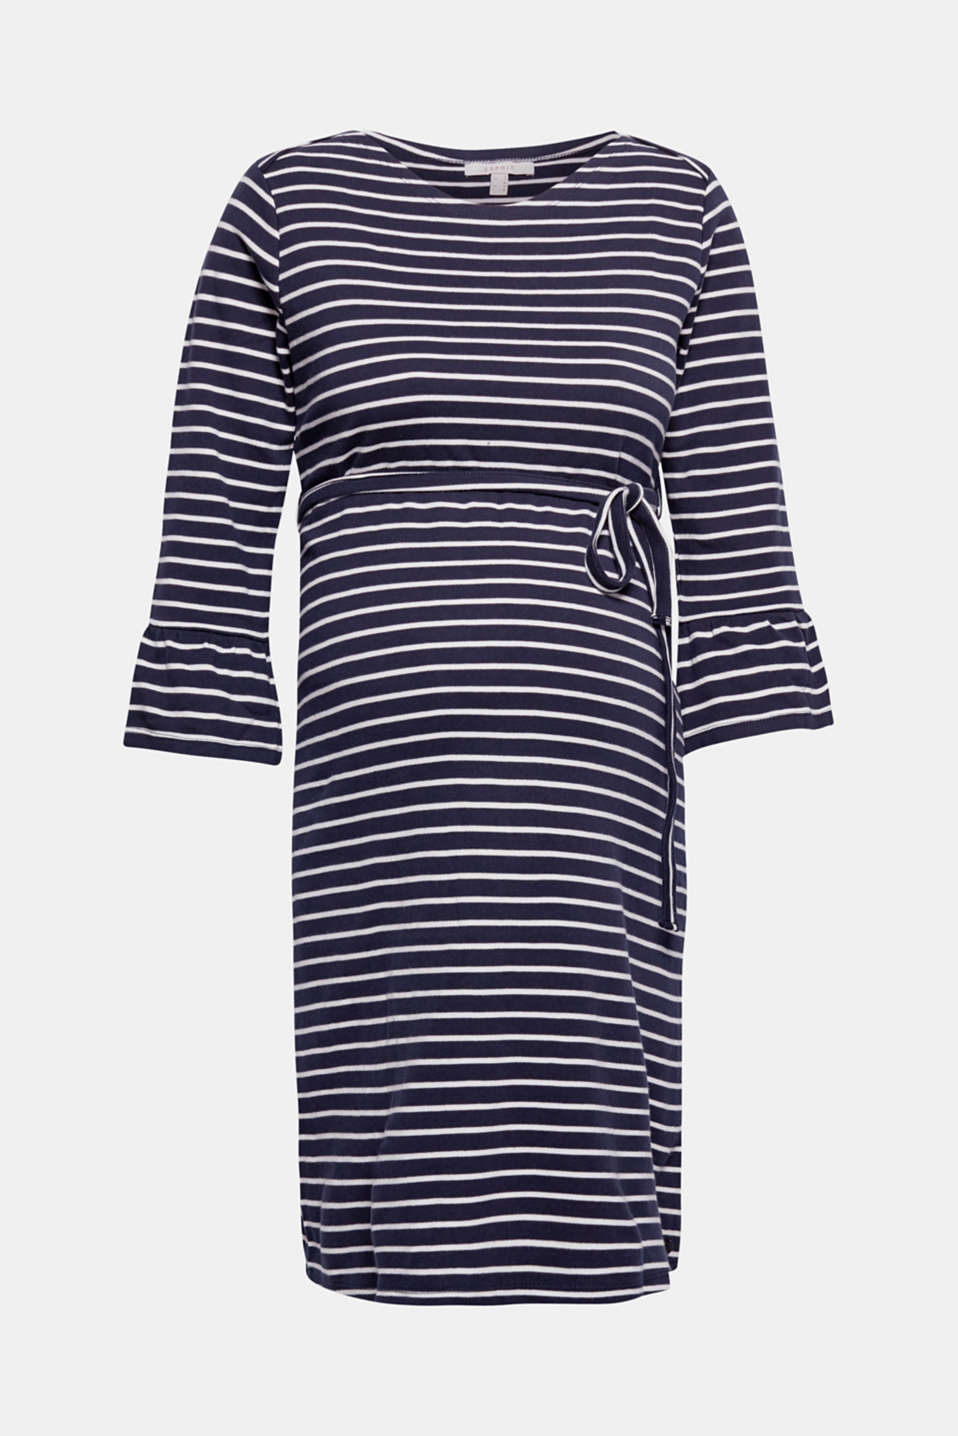 Introducing your new fave dress made of premium, environmentally-friendly organic cotton: featuring sporty stripes, cropped bell sleeves and a flared silhouette!